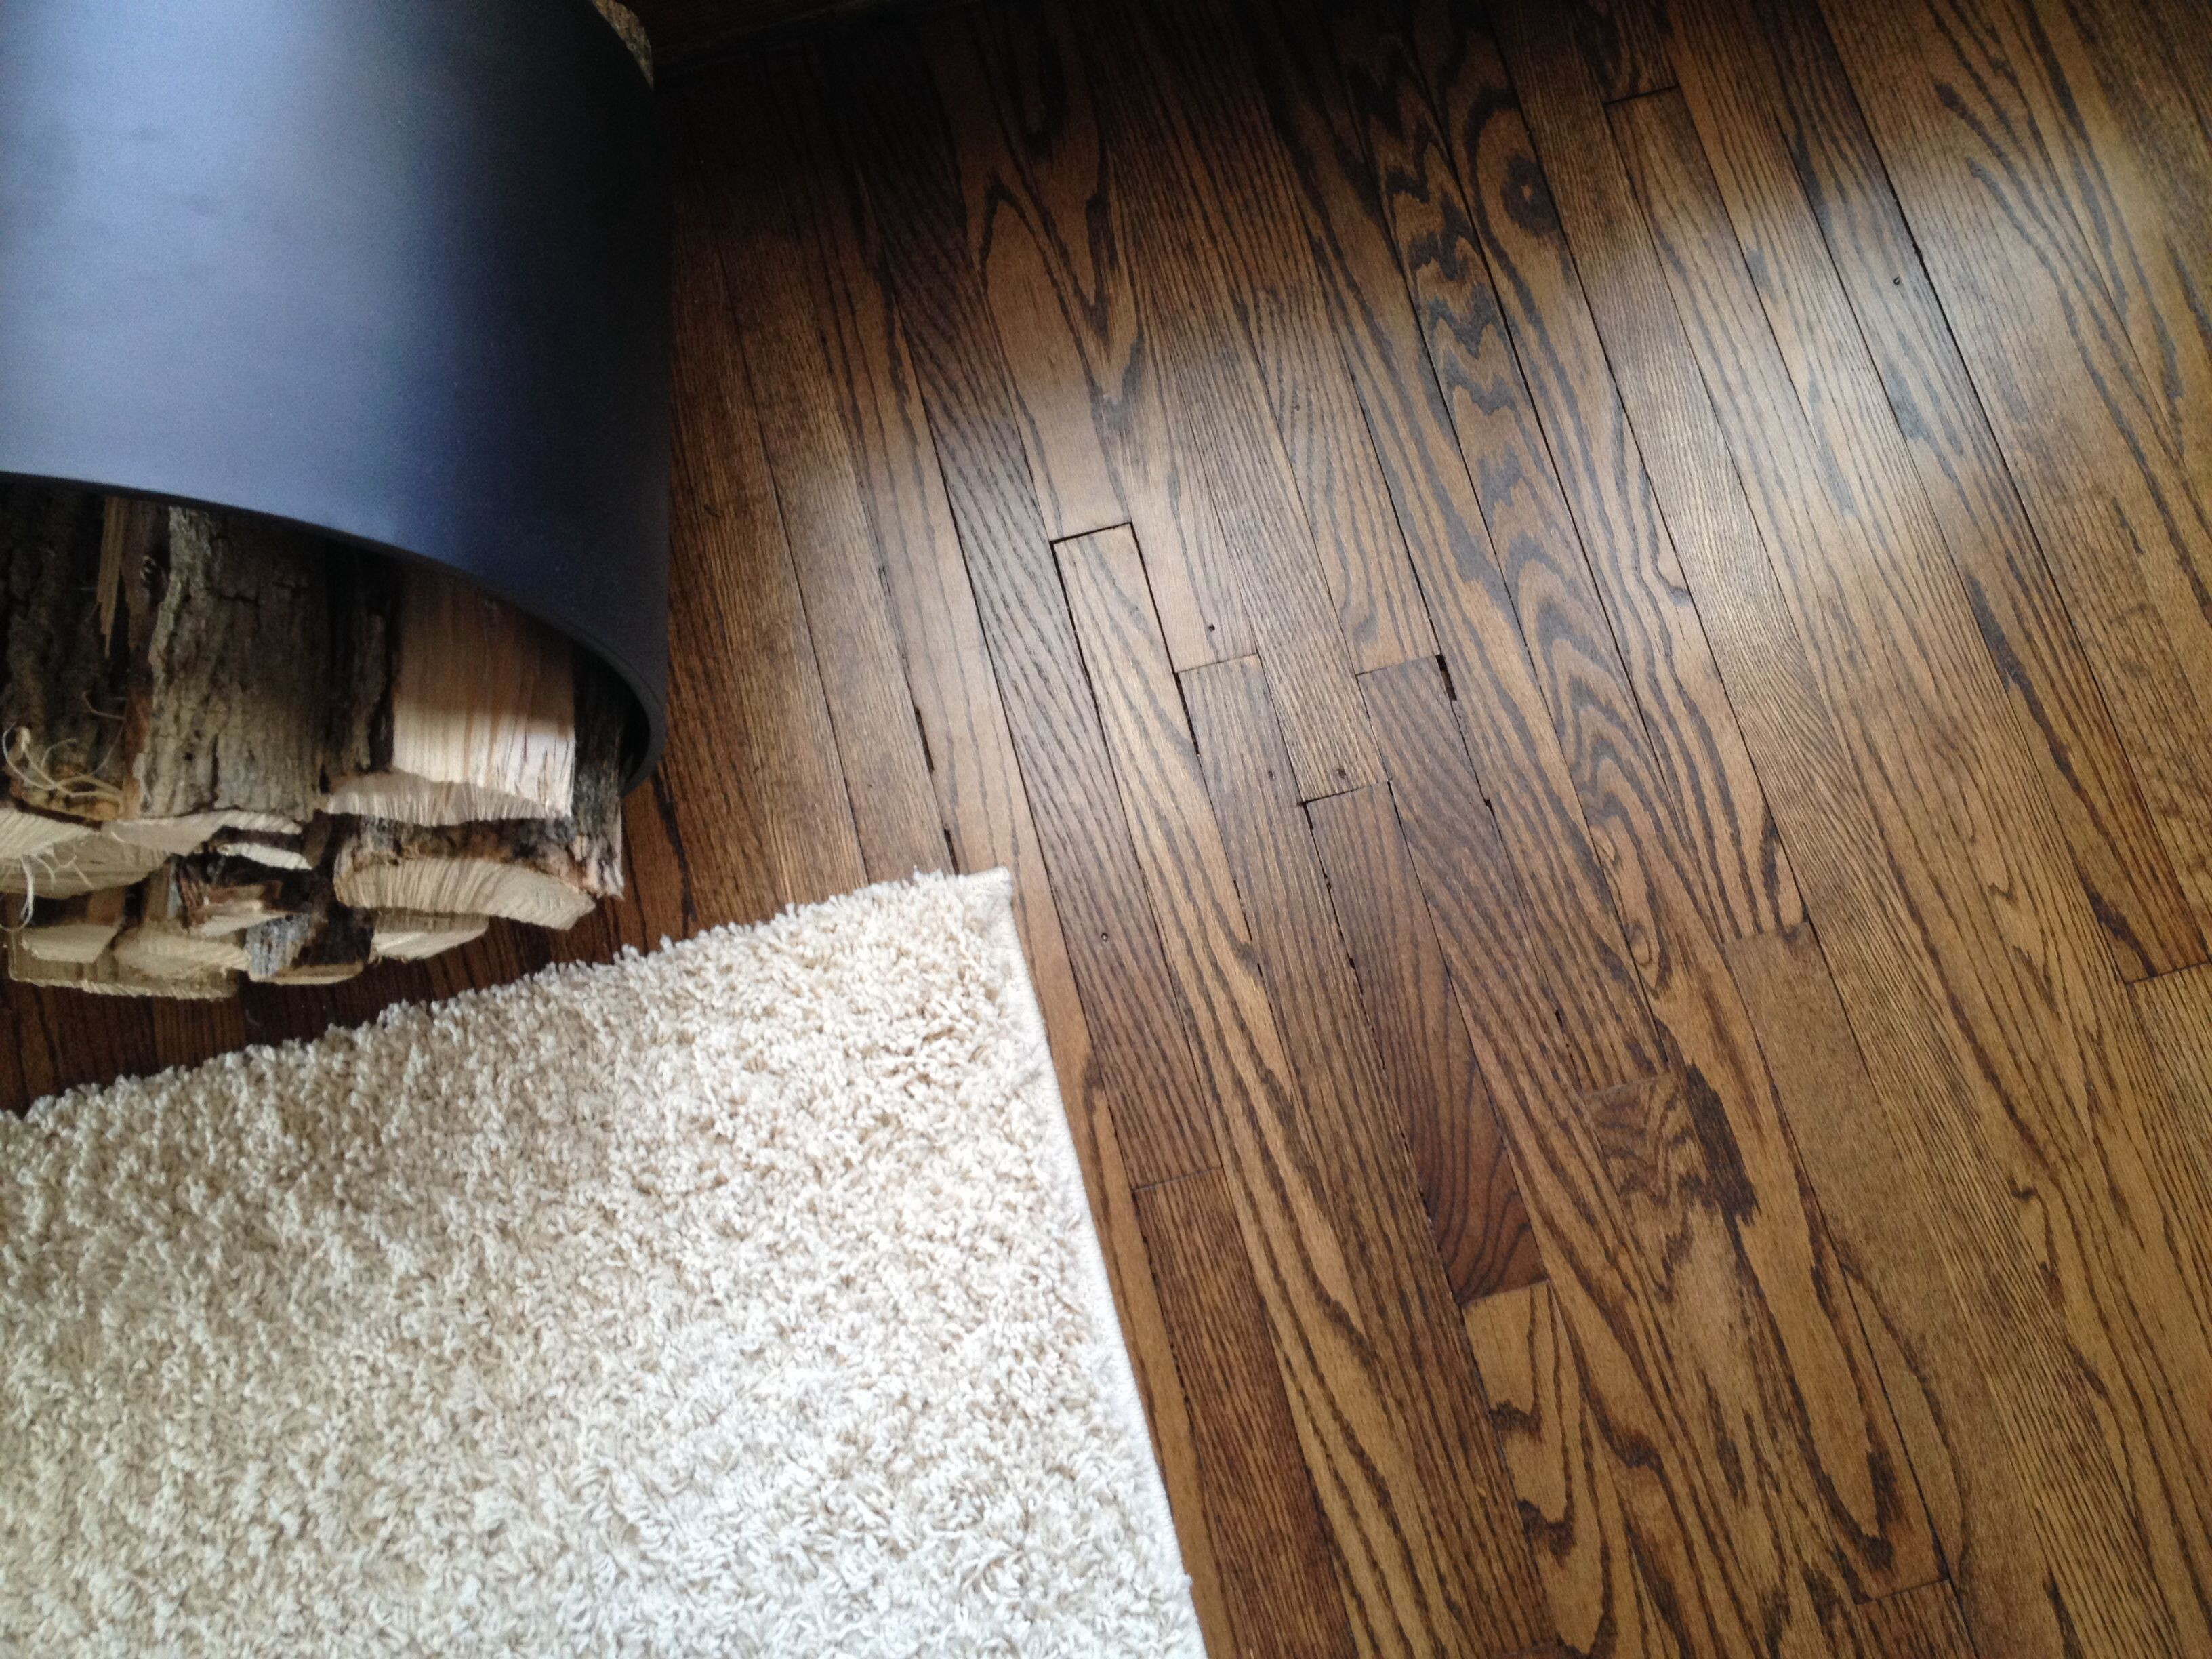 how to clean old hardwood floors under carpet of 18 fresh oak hardwood floors pictures dizpos com for oak hardwood floors unique 113 year old original oak floors refinished in espresso stain images of